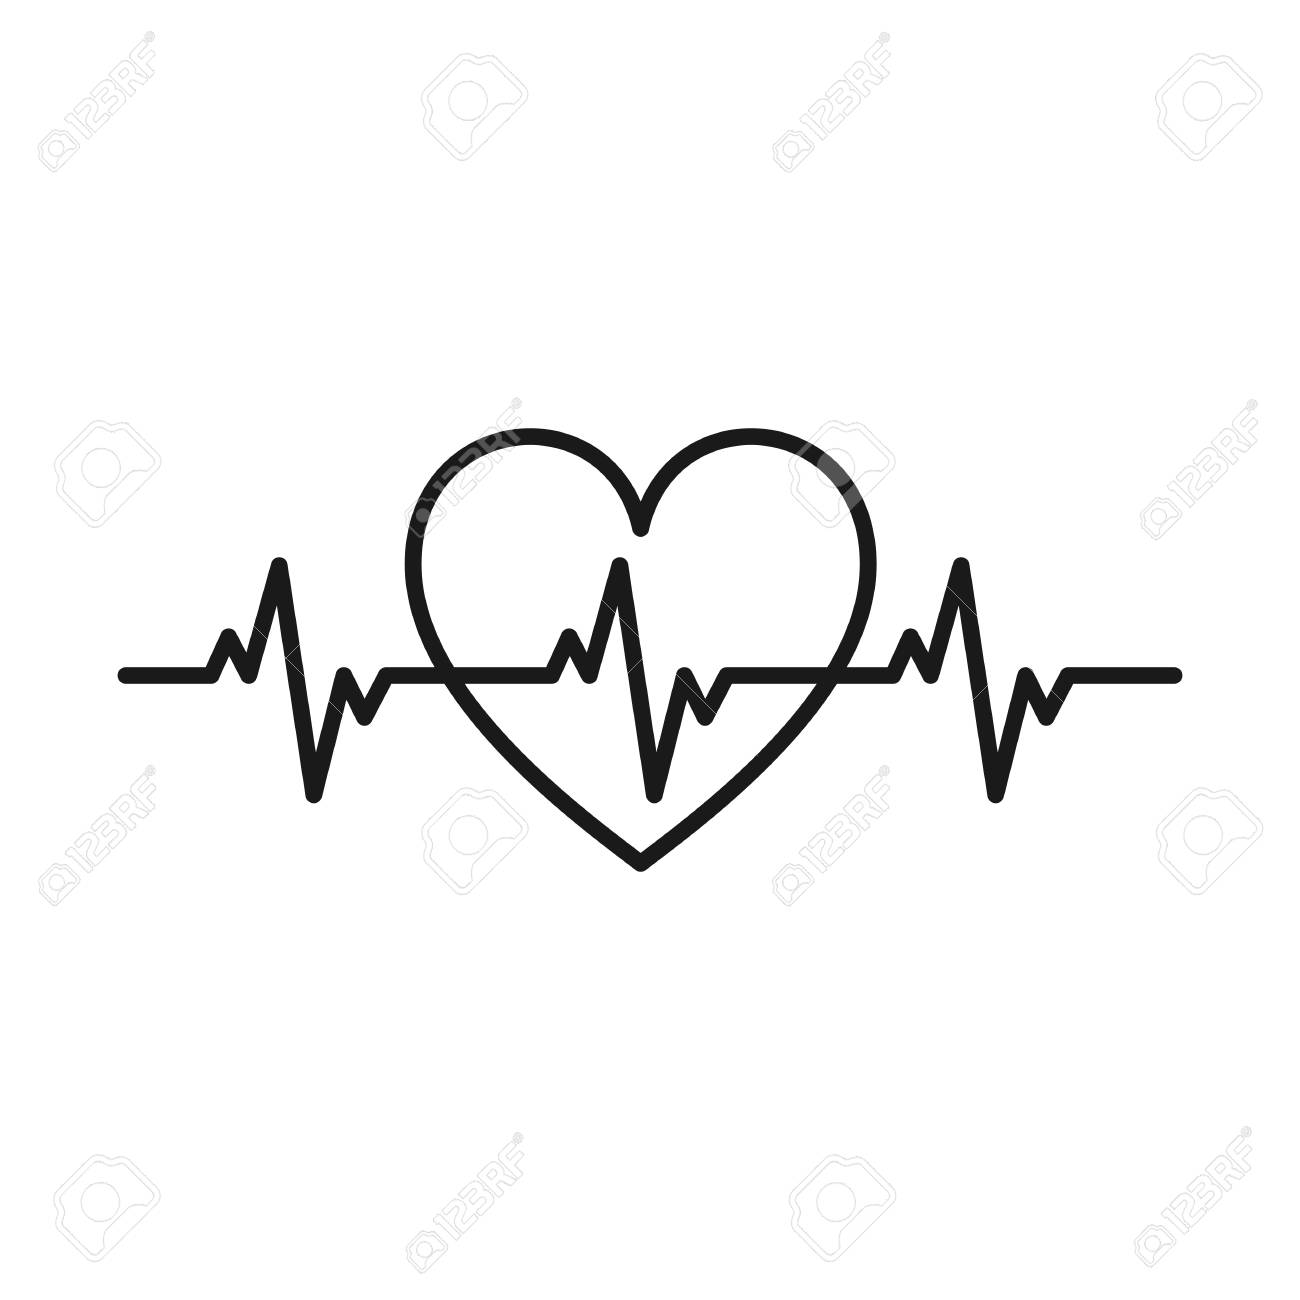 Heart Clipart Black And White images, Free Download Heart Black And White -  Free Transparent PNG Logos